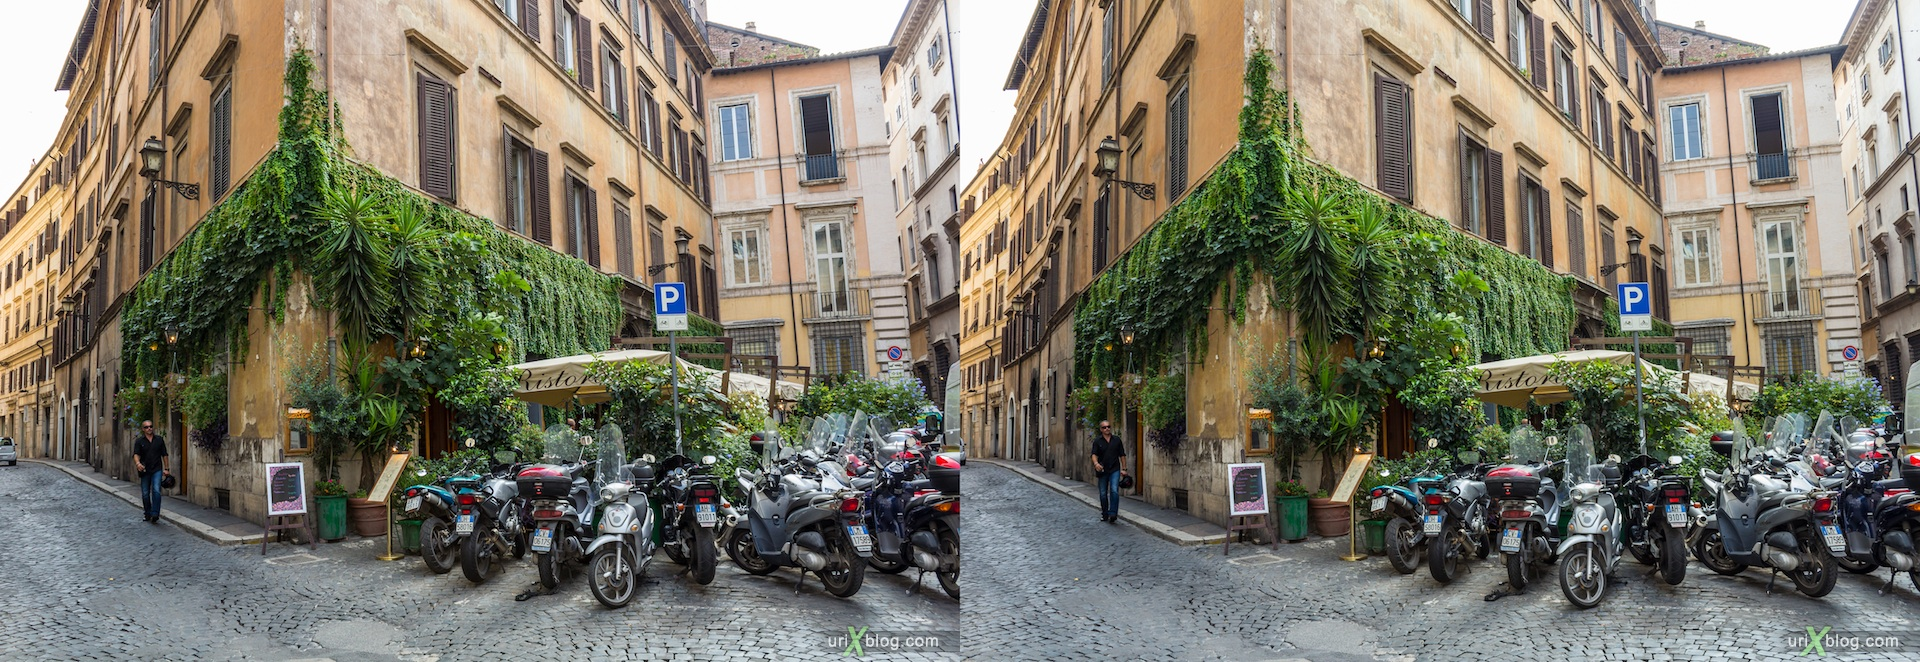 2012, via di Santa Chiara, via Monterone, Рим, Италия, осень, 3D, перекрёстные стереопары, стерео, стереопара, стереопары